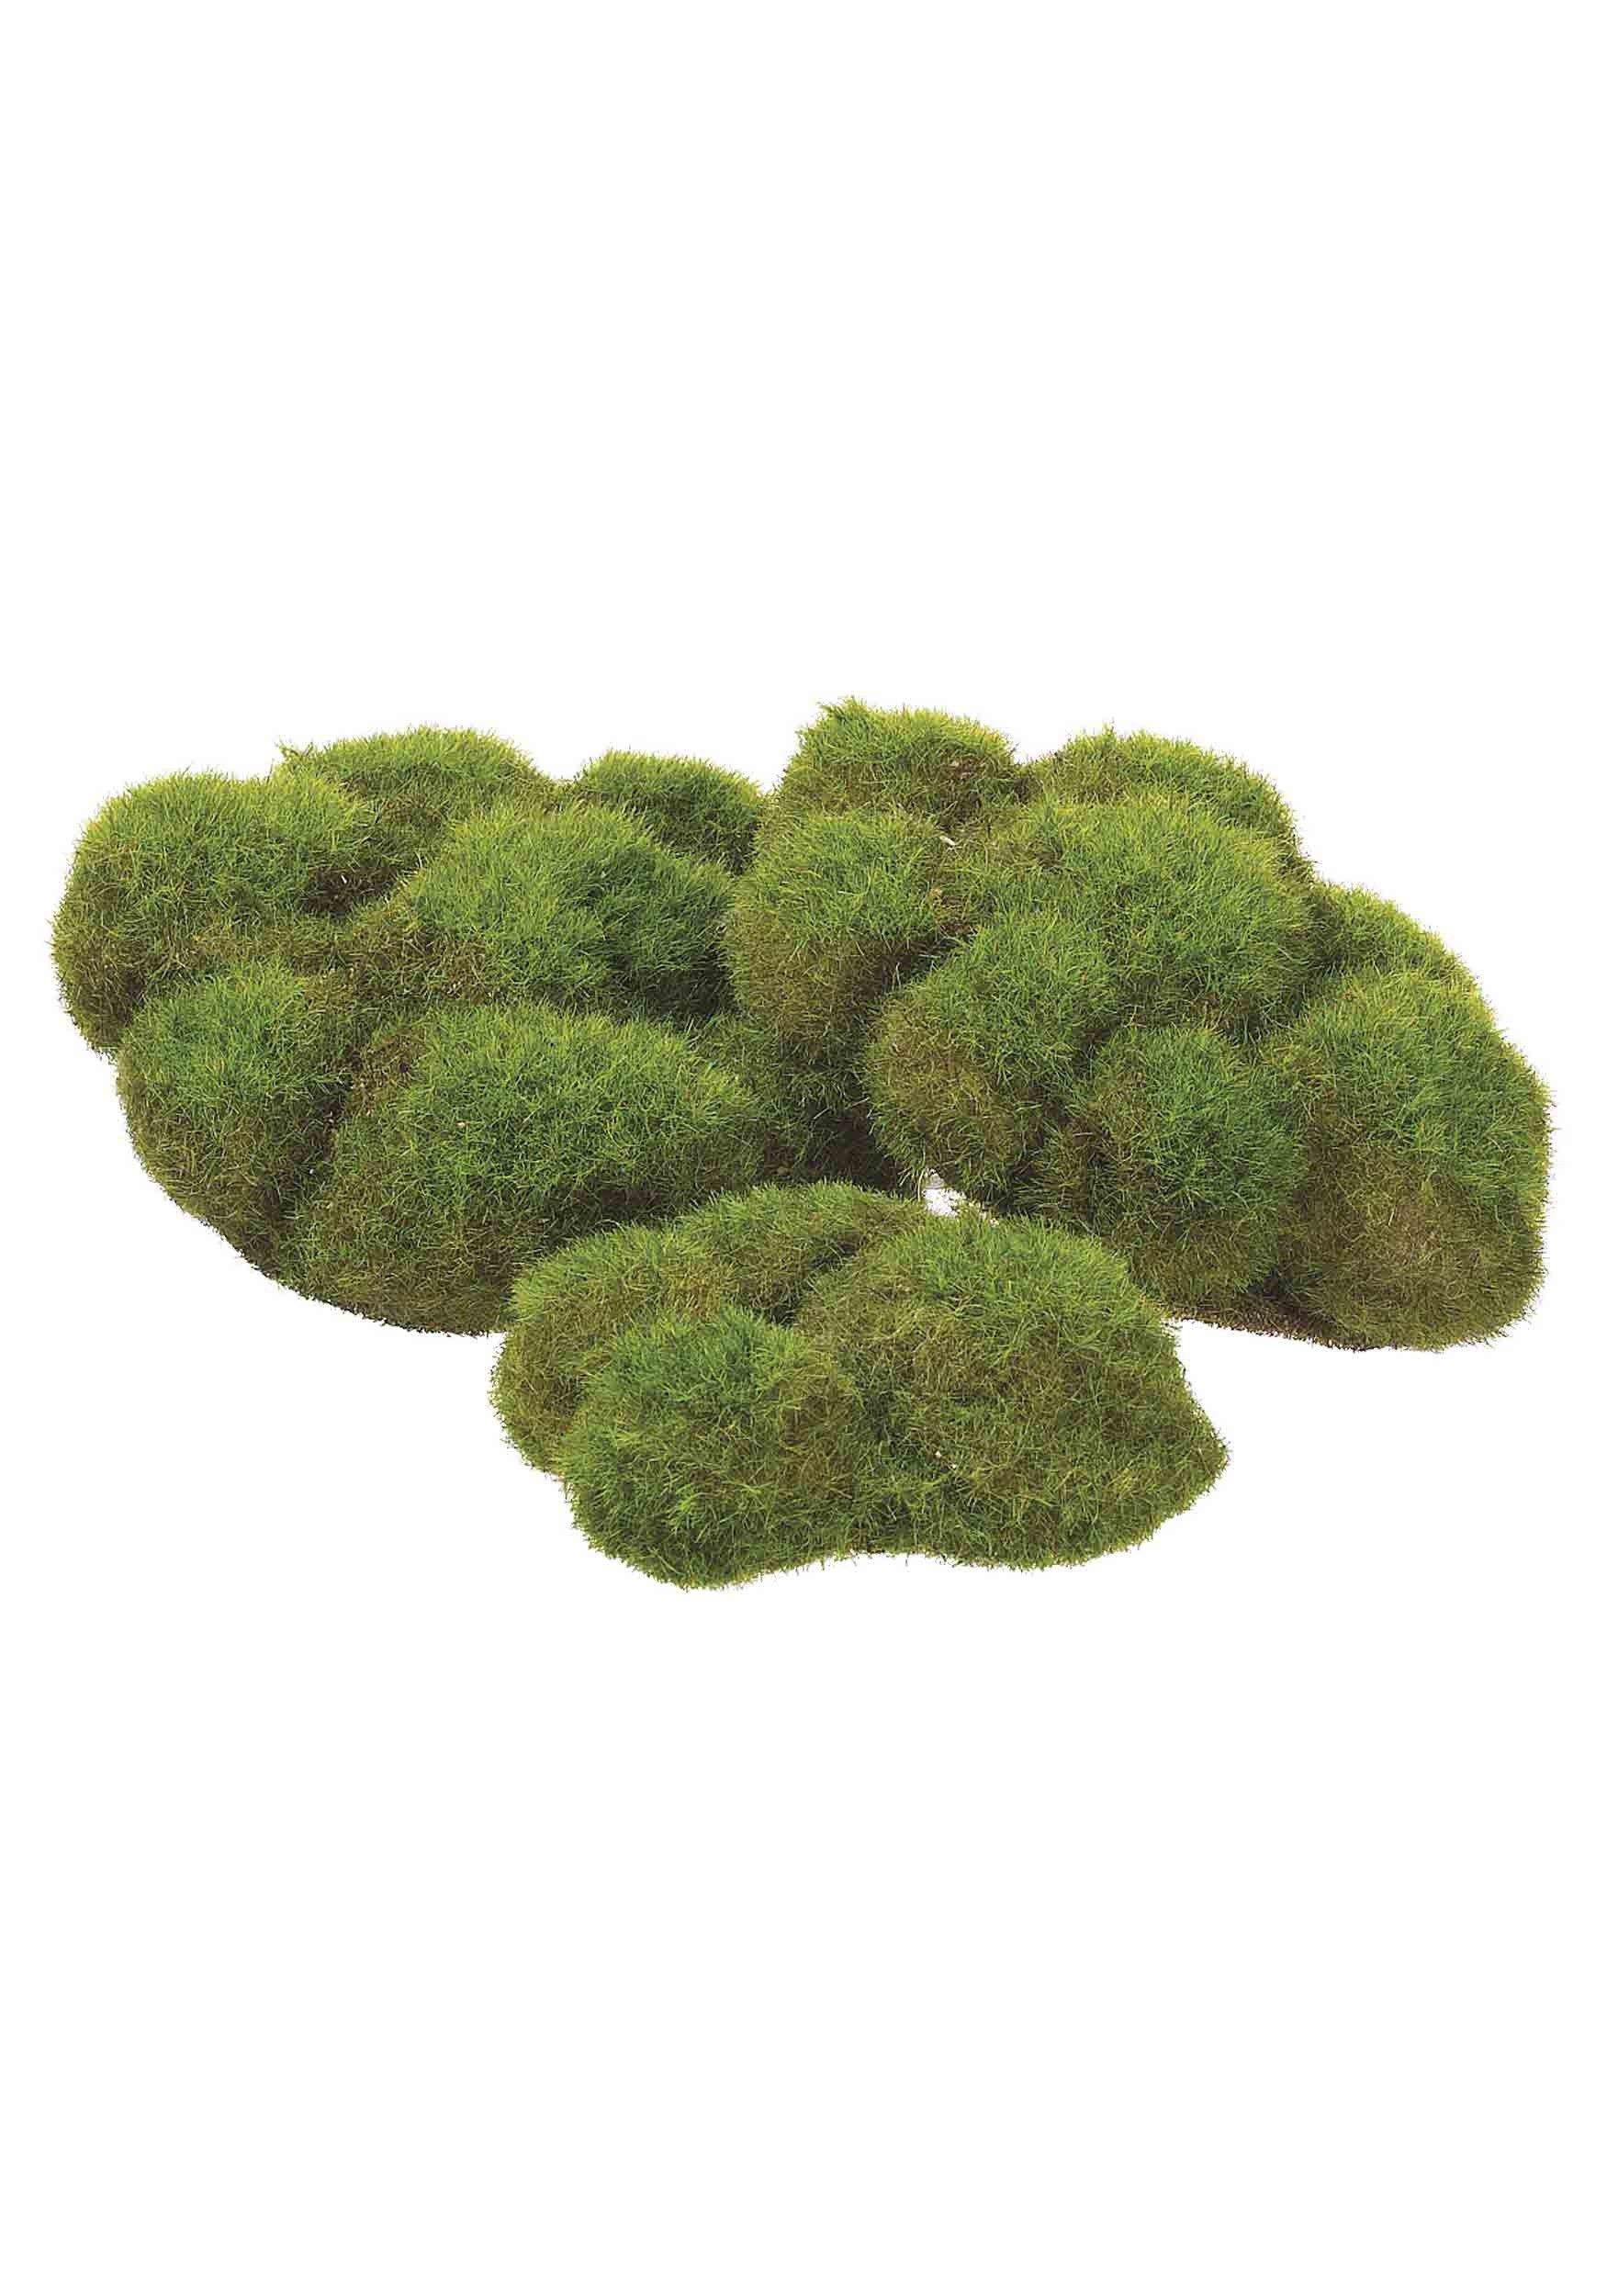 Bag of Mood Moss